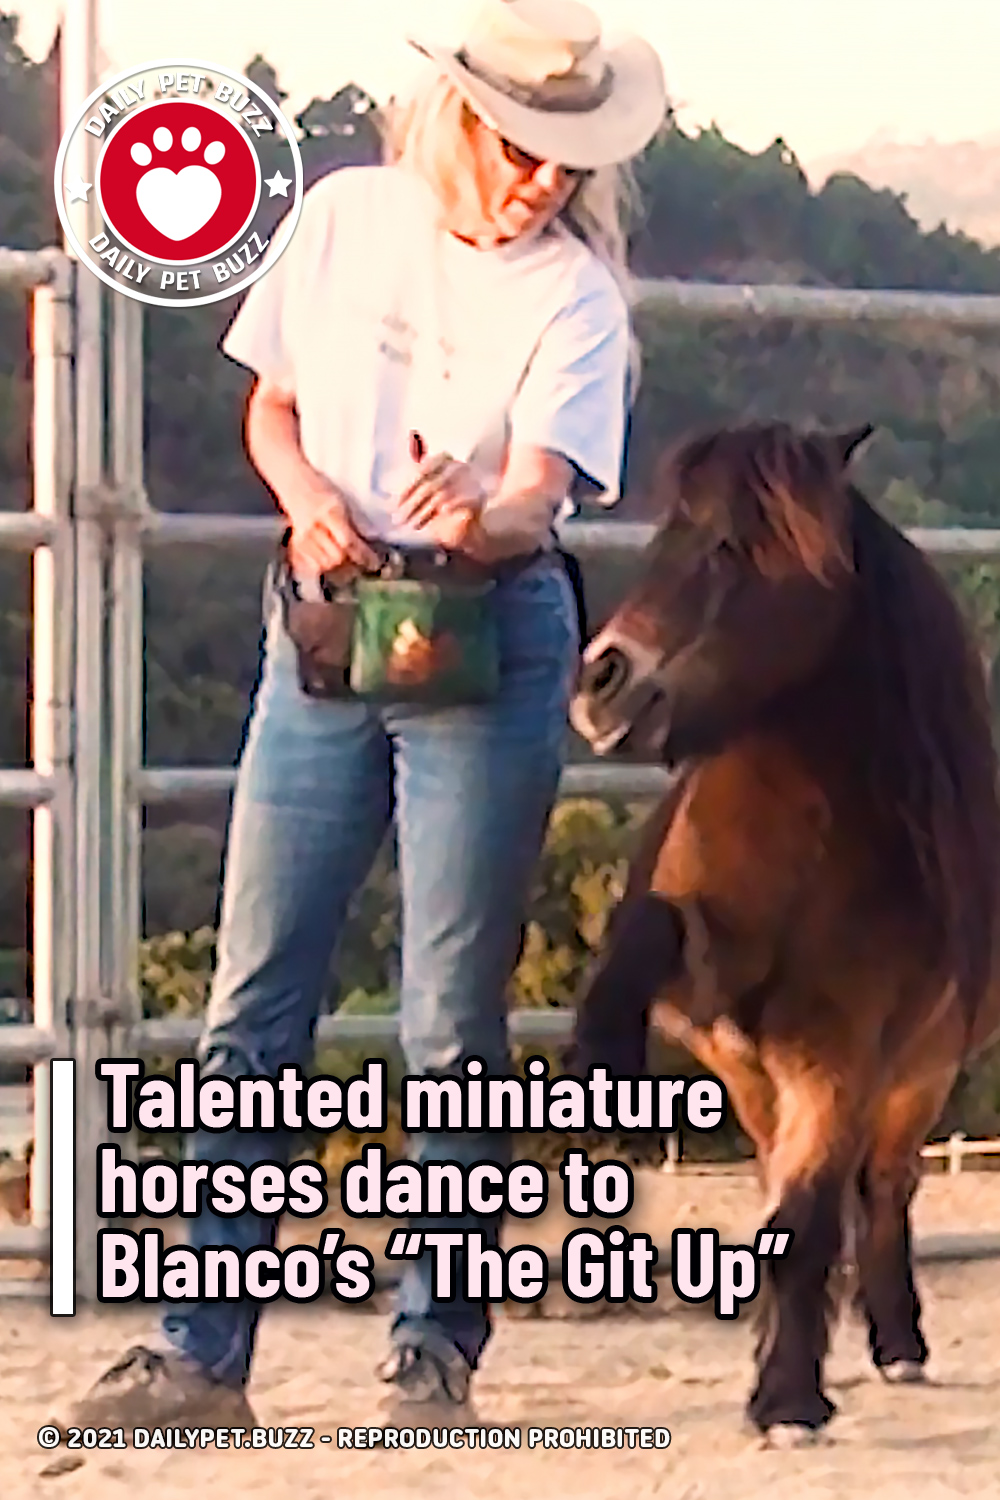 """Talented miniature horses dance to Blanco's """"The Git Up"""""""